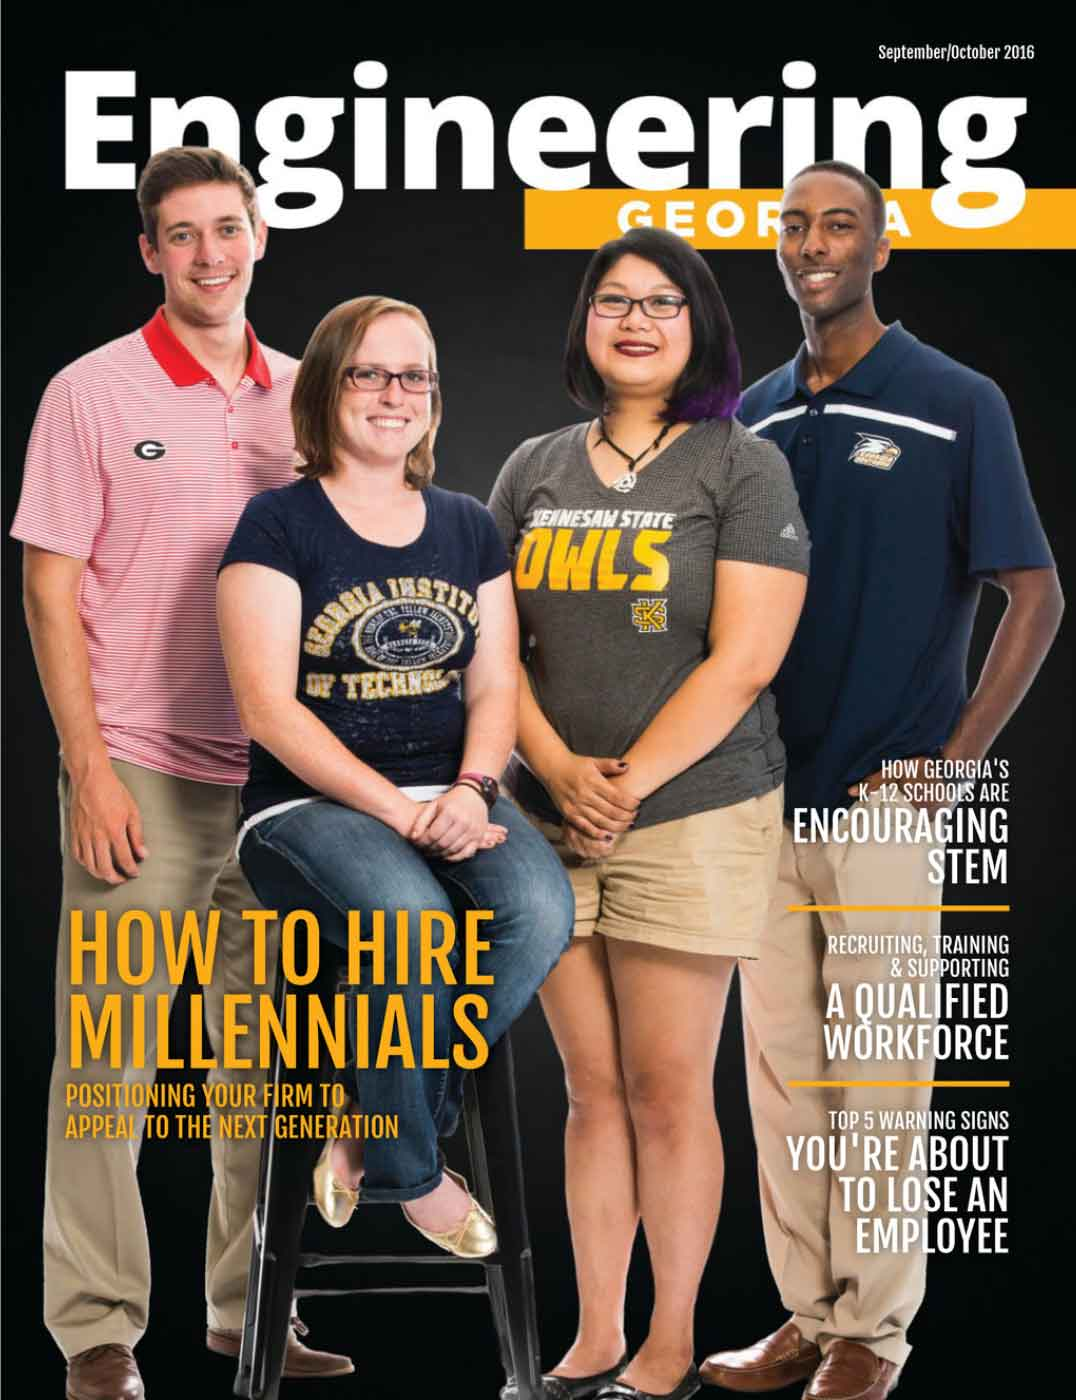 Engineering Georgia – How to Hire Millennials + More in the Latest Workforce and Education Issue